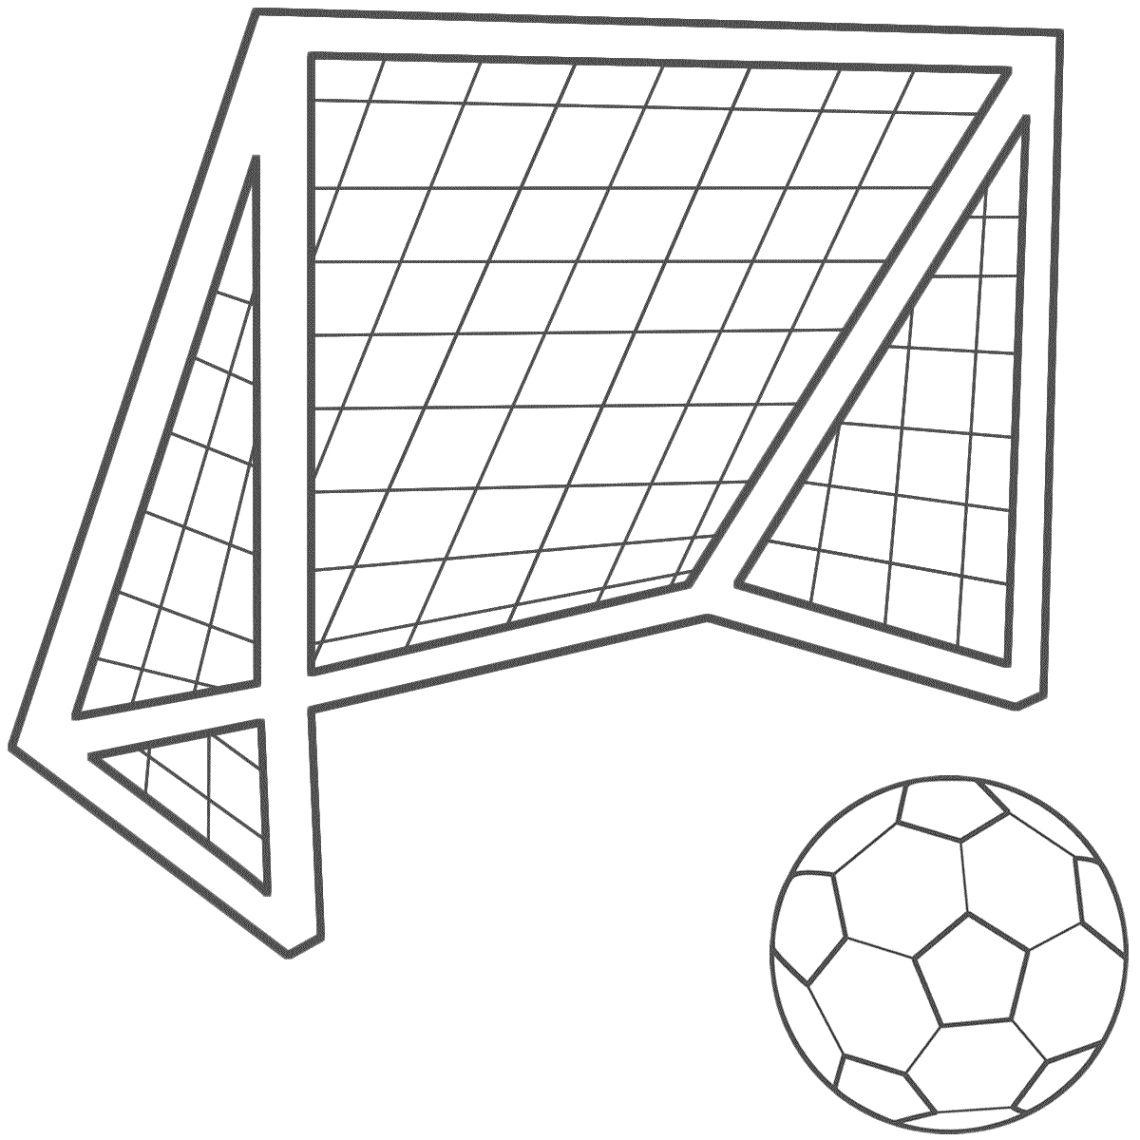 Playing Skilled Soccer One Of The Greatest Sporting Events In The World Is Soccer Otherwise Known As Foo Football Coloring Pages Goals Football Football Kits